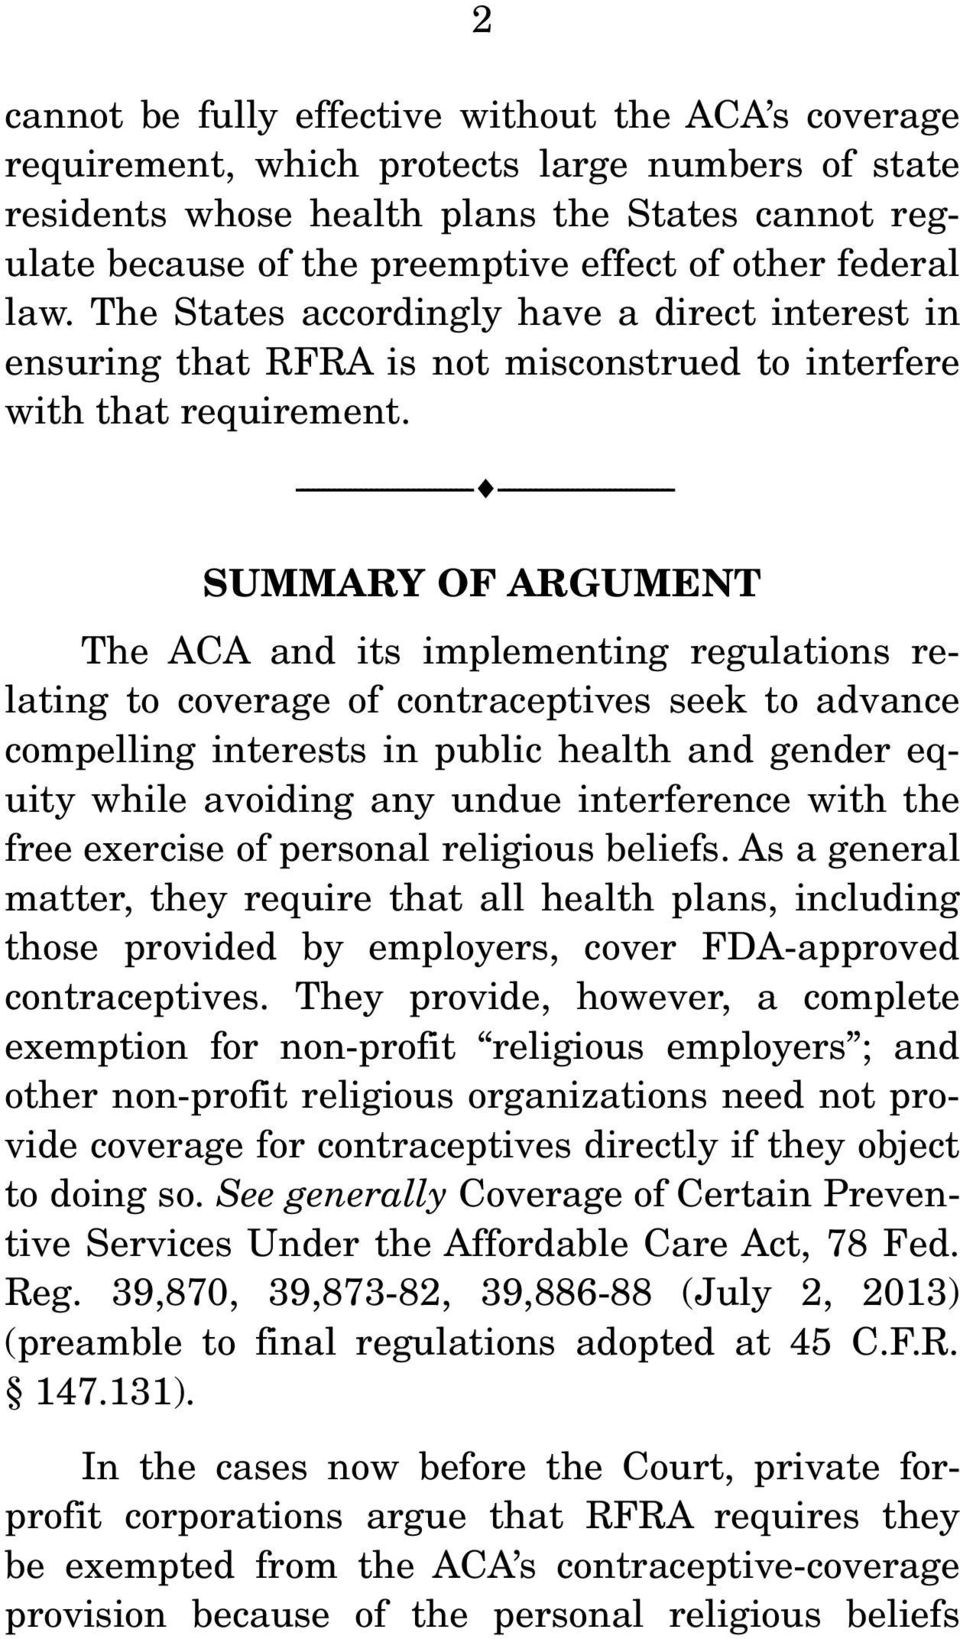 --------------------------------- --------------------------------- SUMMARY OF ARGUMENT The ACA and its implementing regulations relating to coverage of contraceptives seek to advance compelling